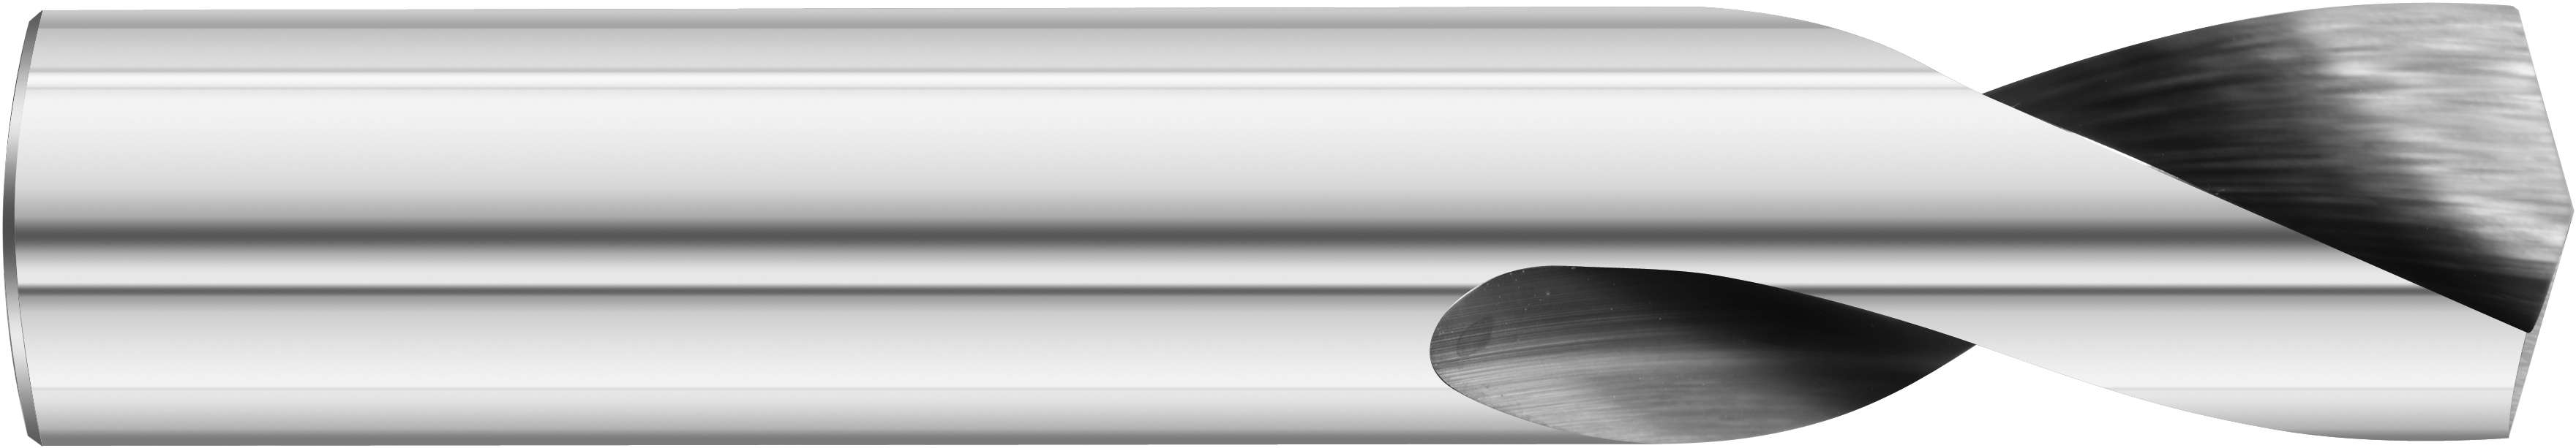 1/2 Solid Carbide Nc Spotting Dril 3xd Length Cam Relieved Se – 15752